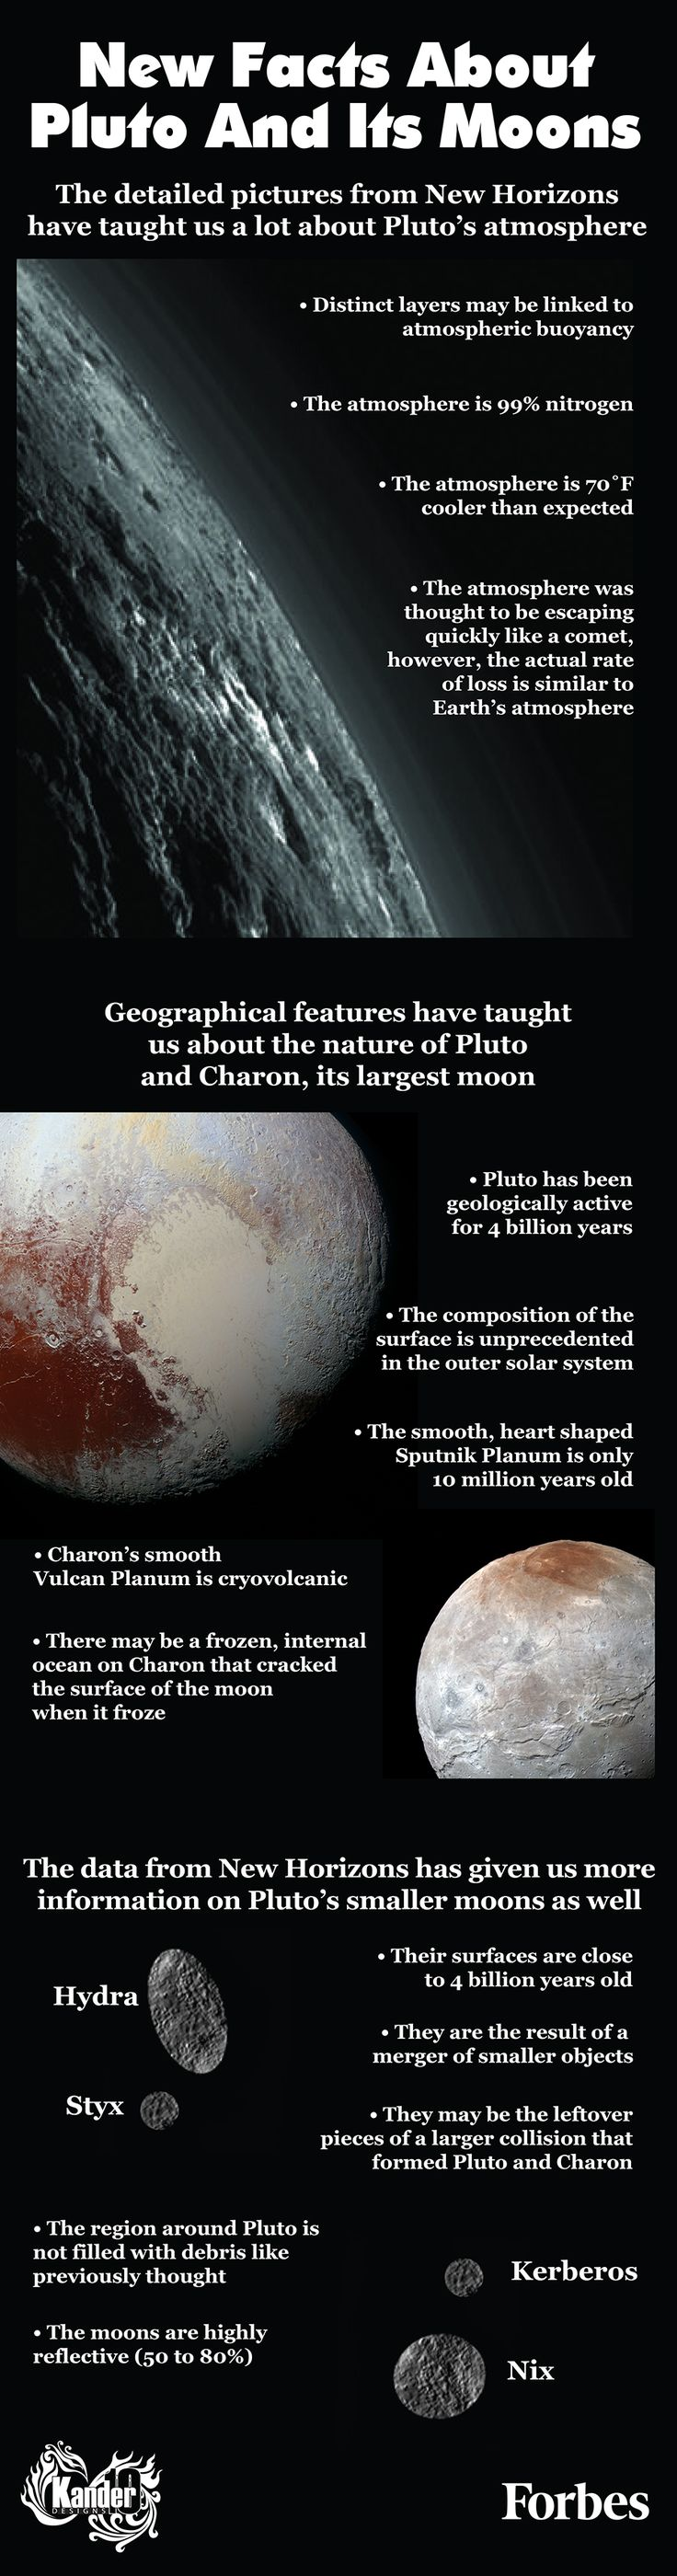 New Facts About Pluto